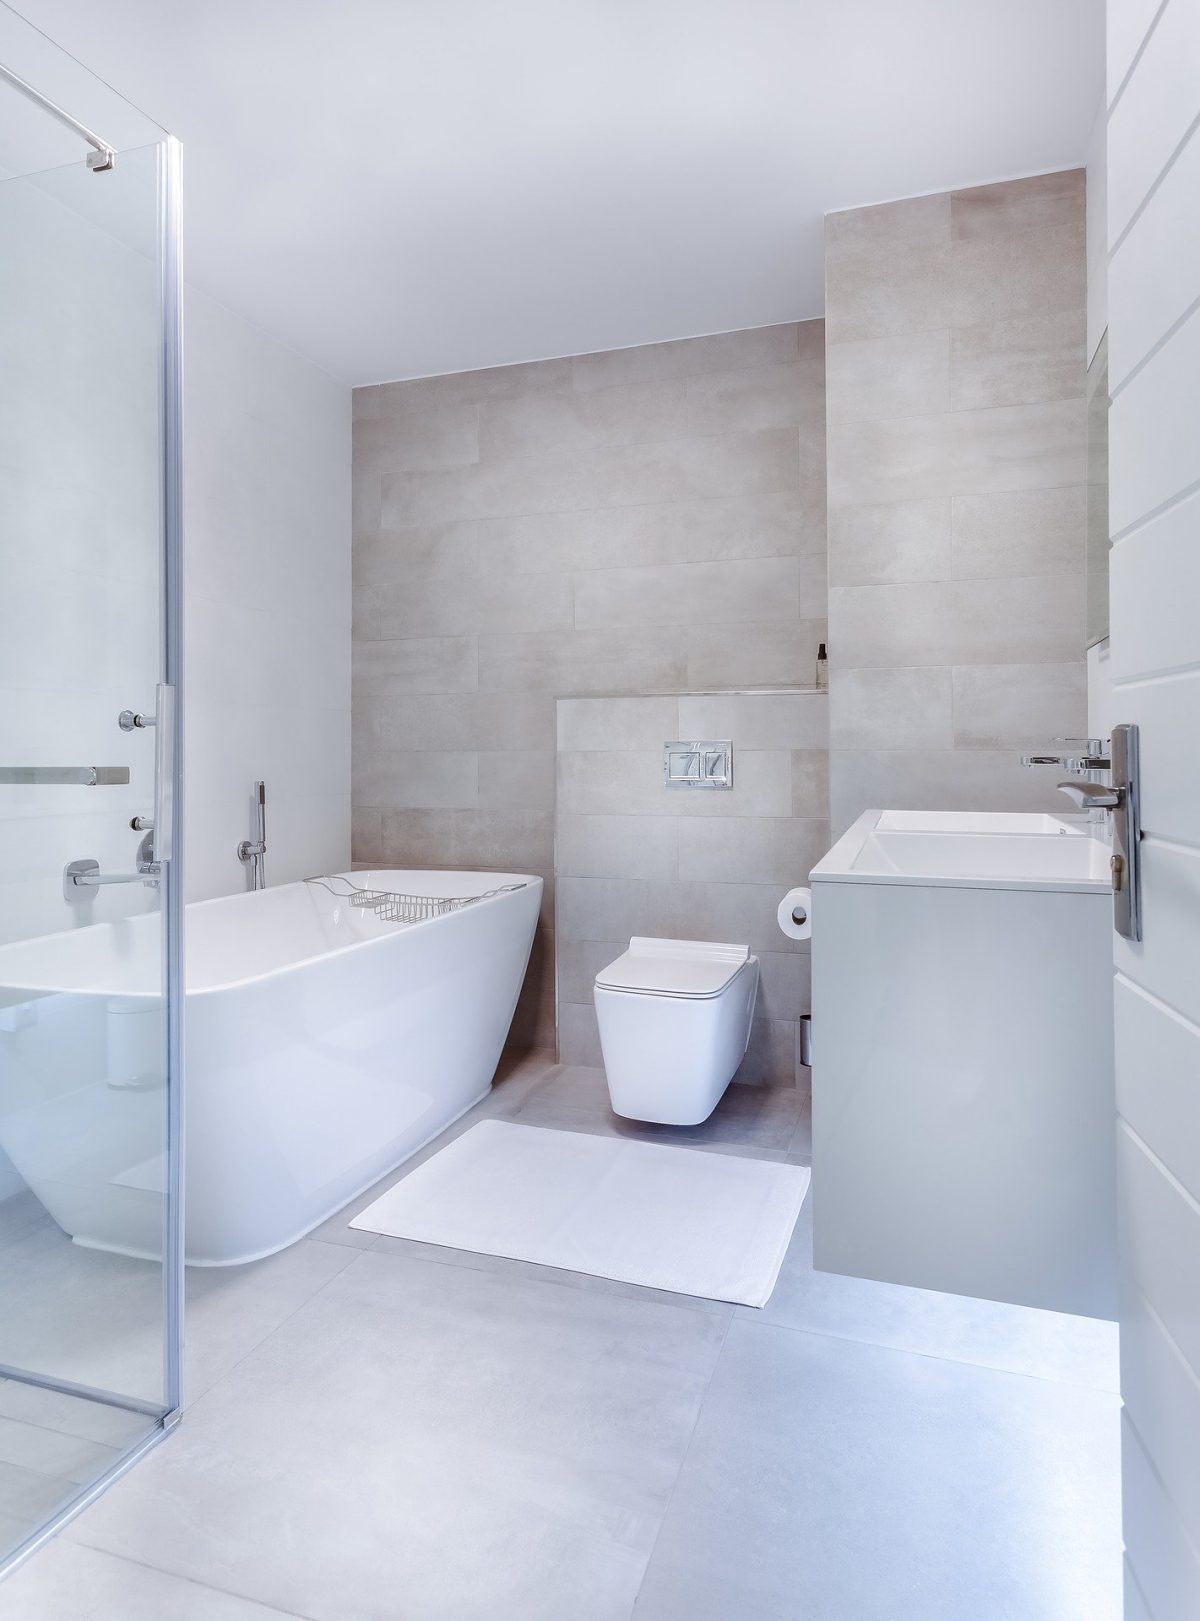 Create Classy Bathroom Look With Shower Screen Panels Sydney